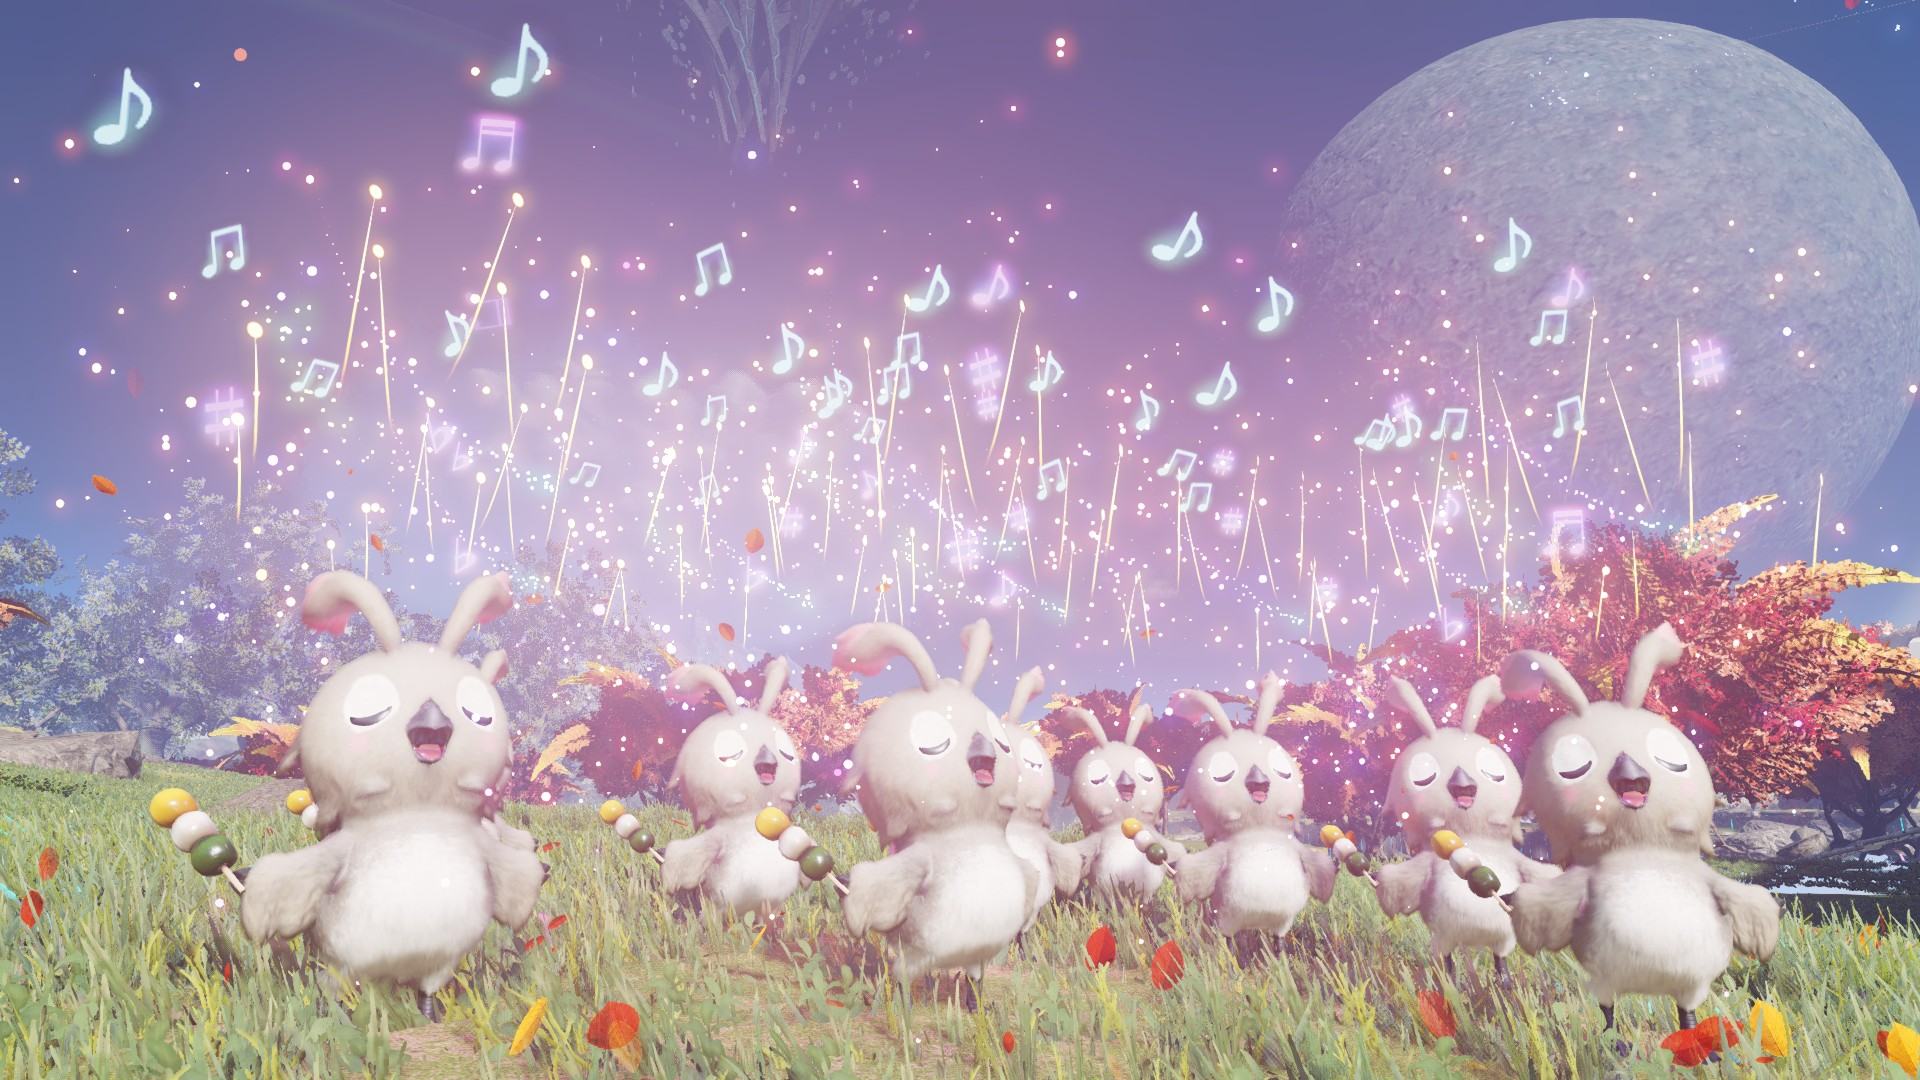 PSO2 New Genesis Announces Sonic Colors: Ultimate Collaboration